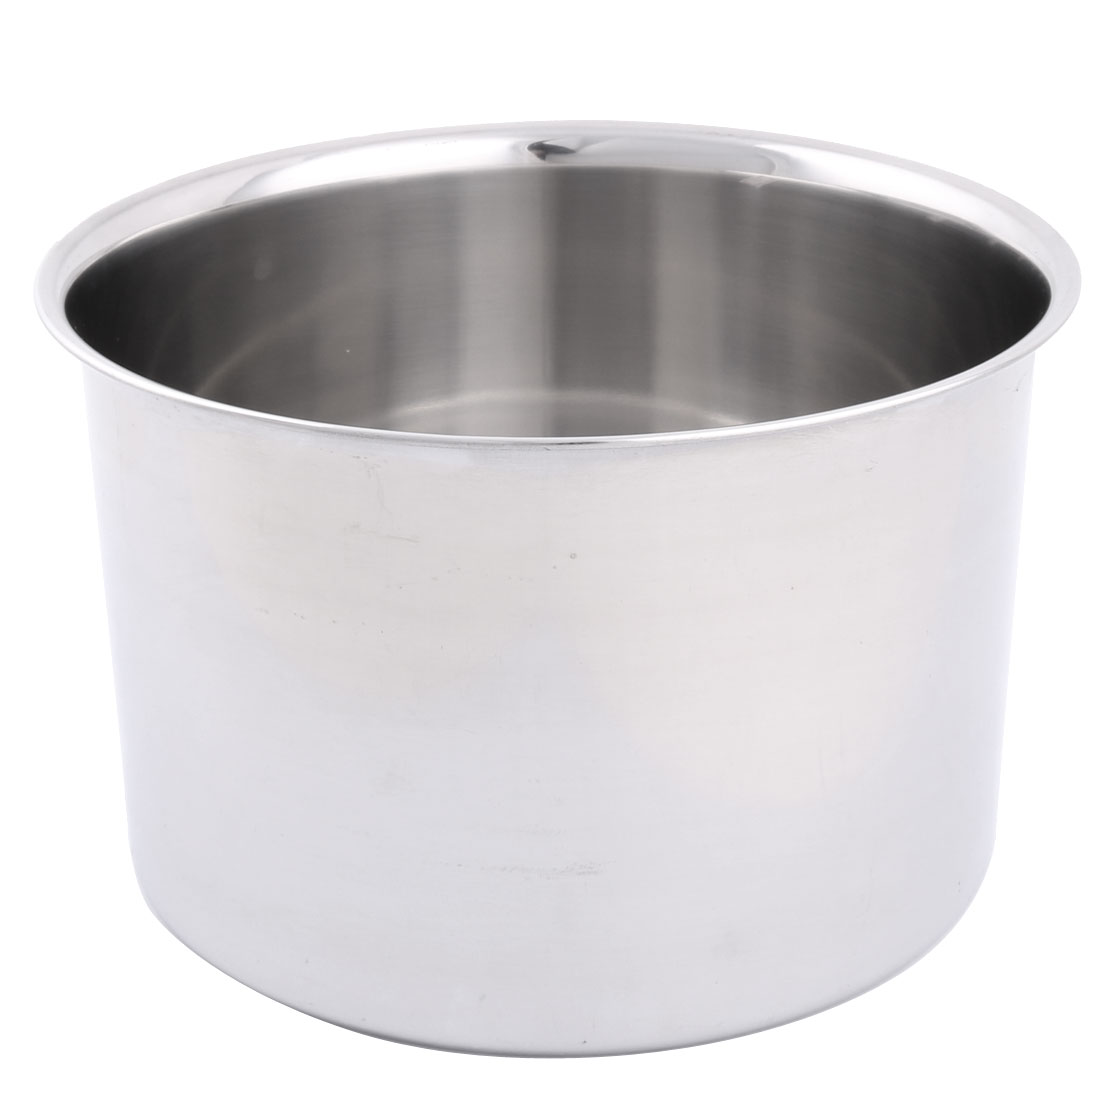 Home Restaurant Stainless Steel Round Design Porridge Food Soup Dish Plate 16cm Dia